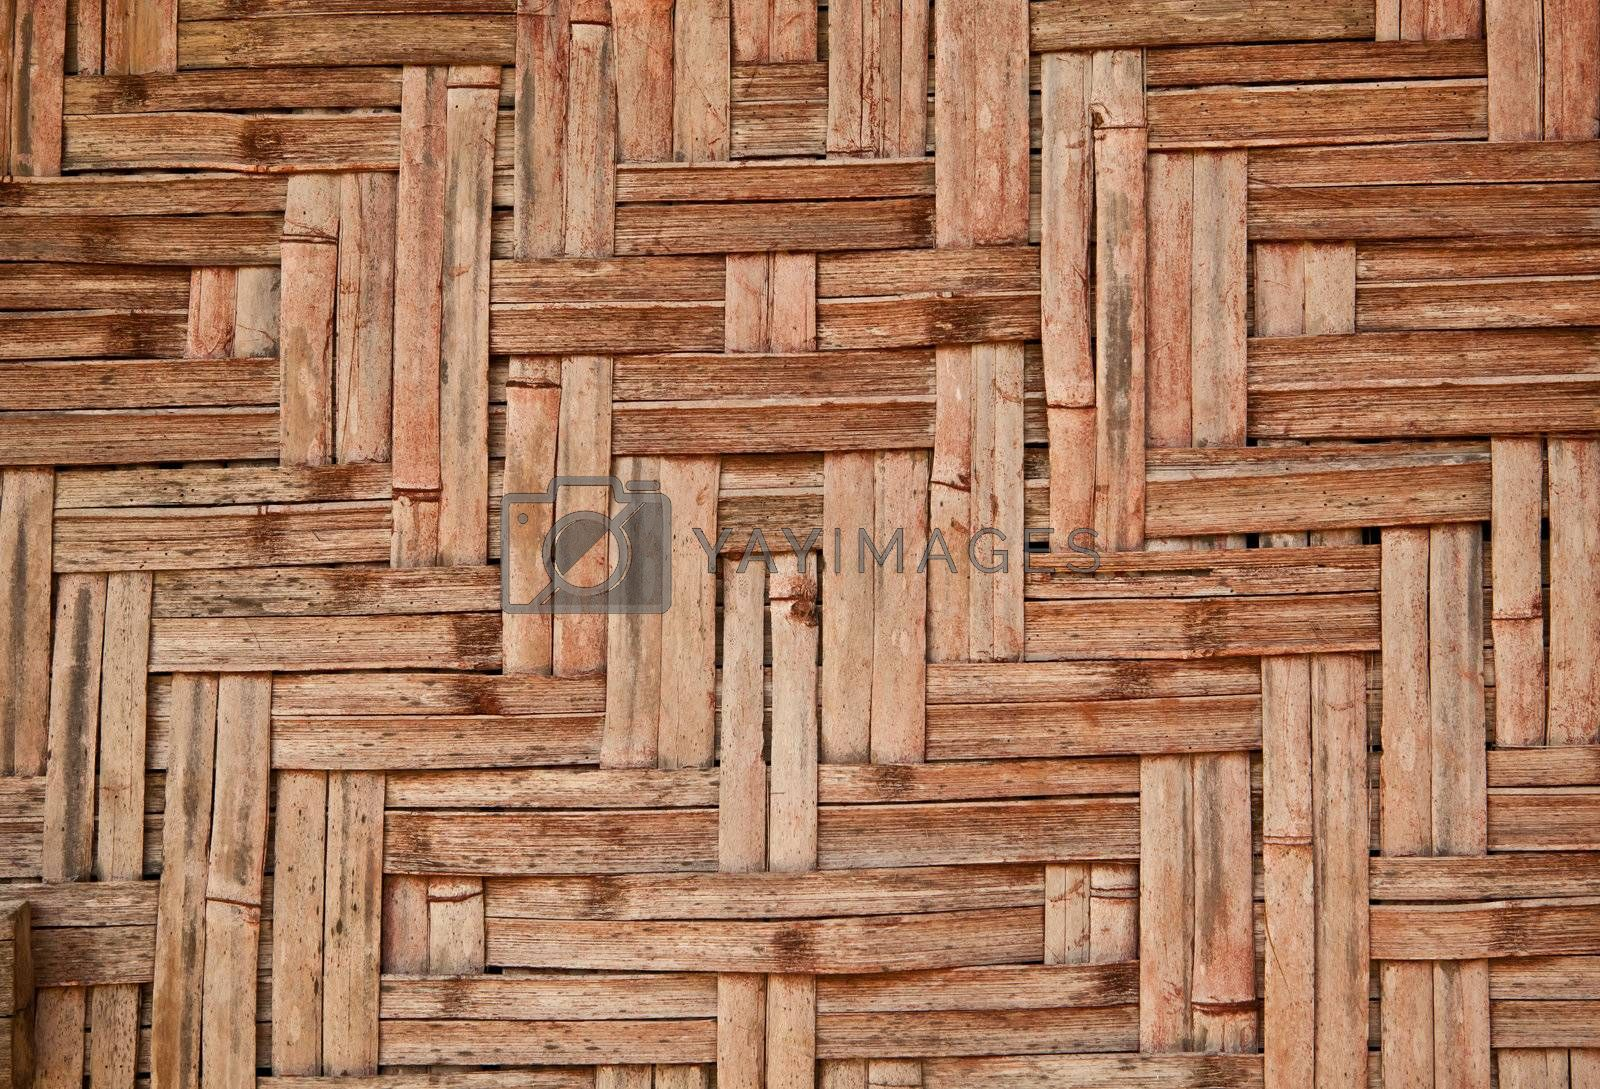 Wicker wood pattern by witthaya